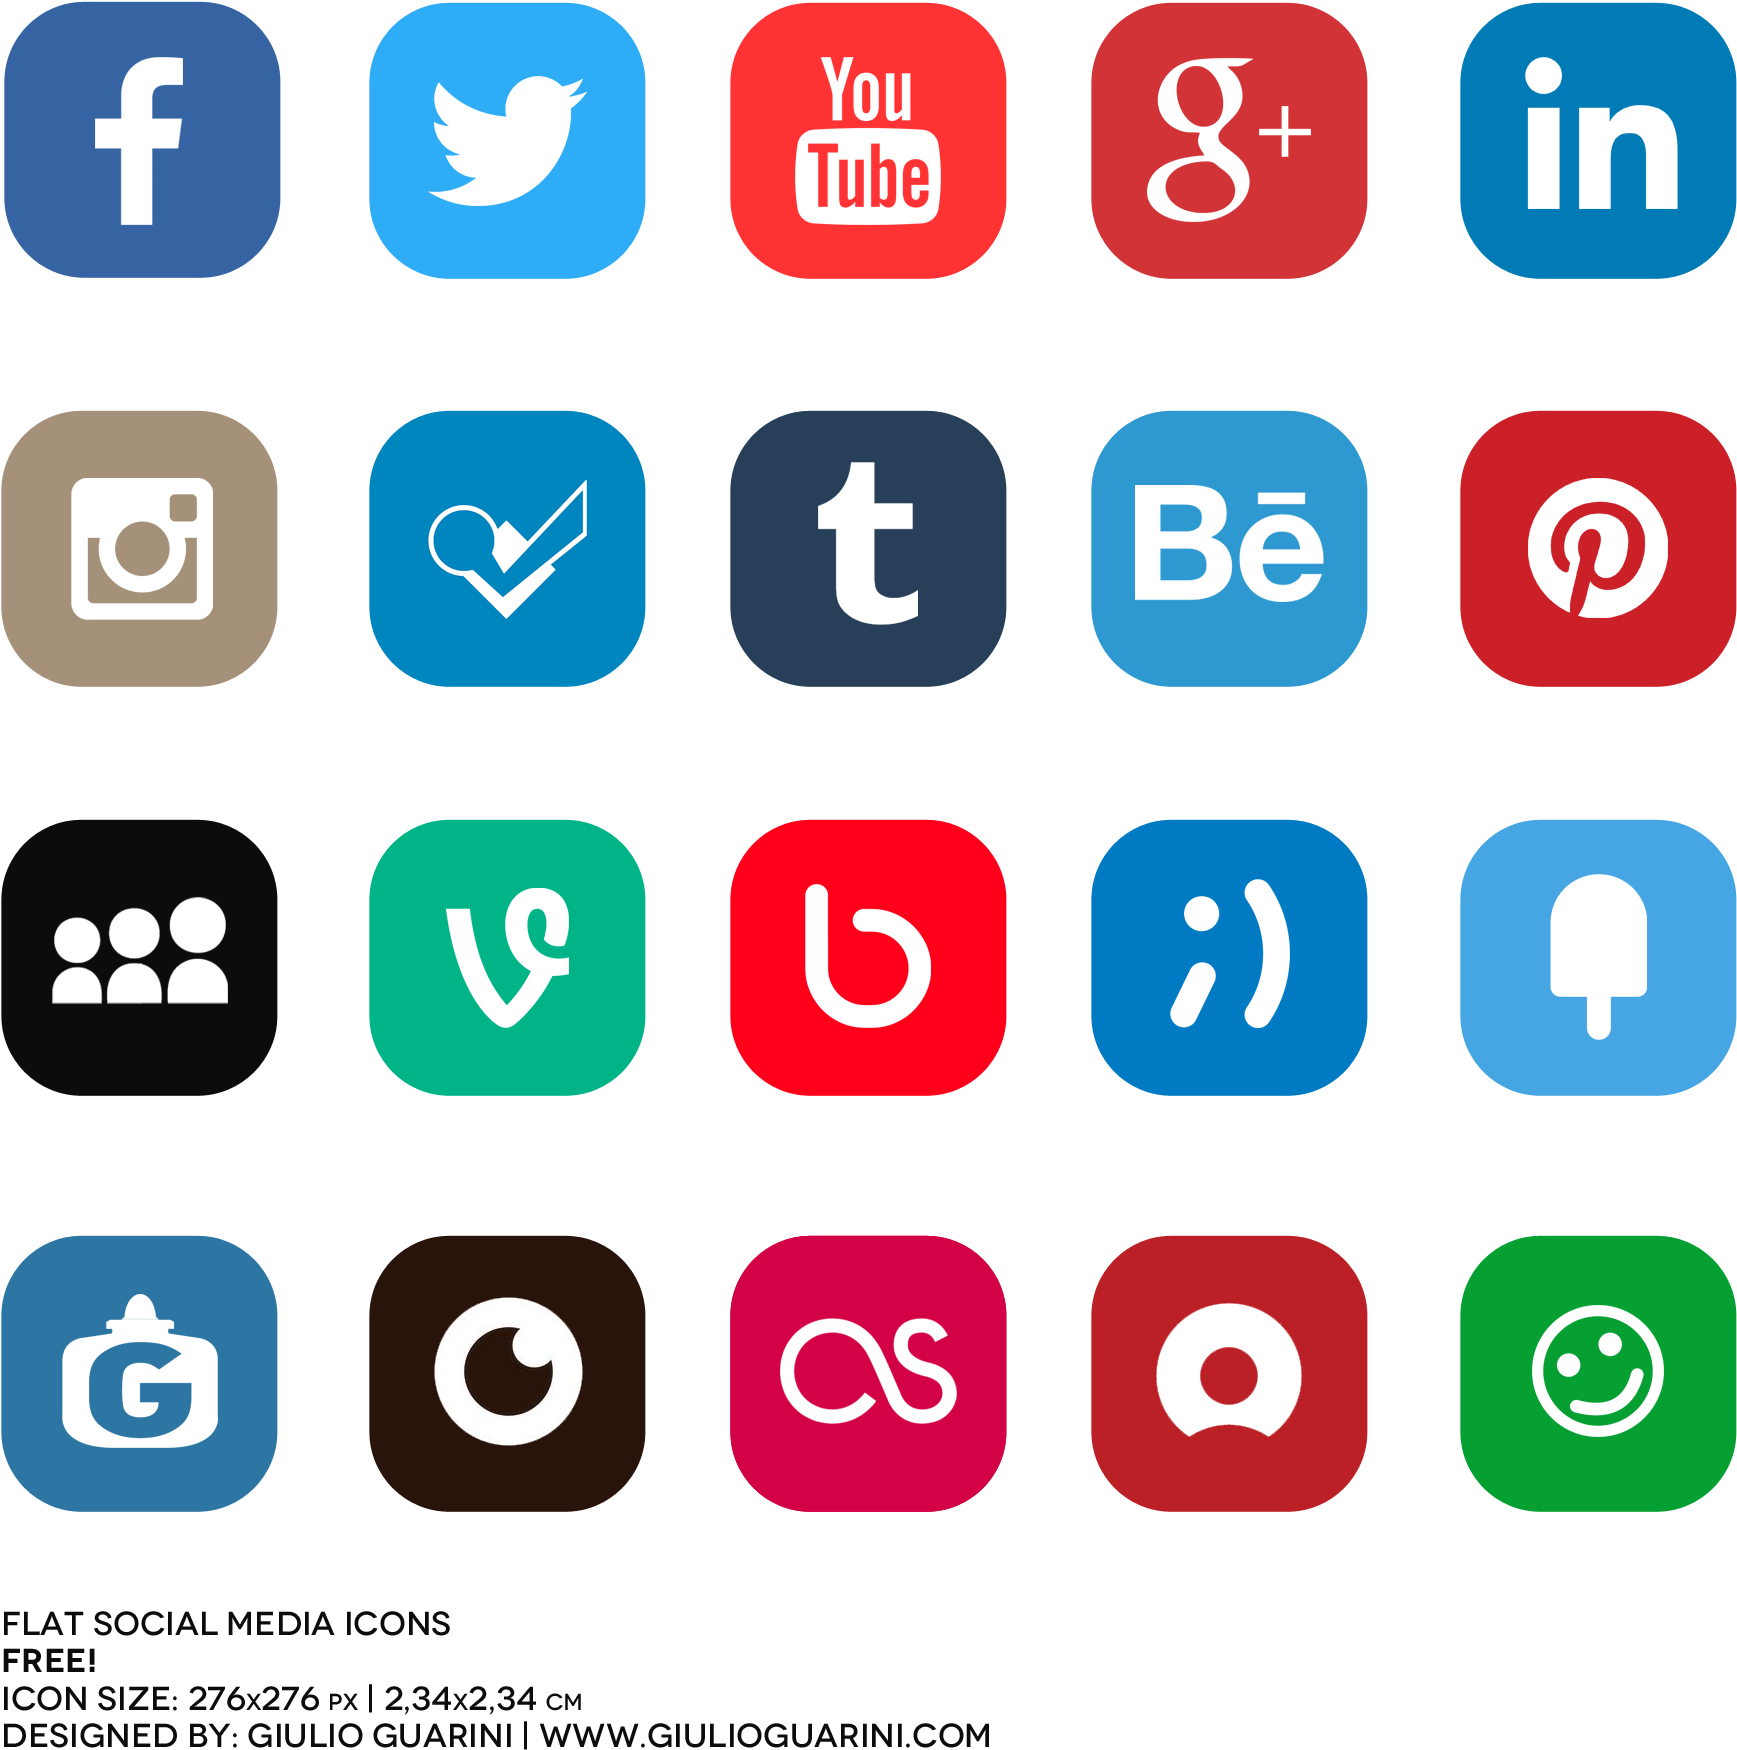 Download 2000 X 2000 7 - Social Media Icon Hd Png Clipart ...